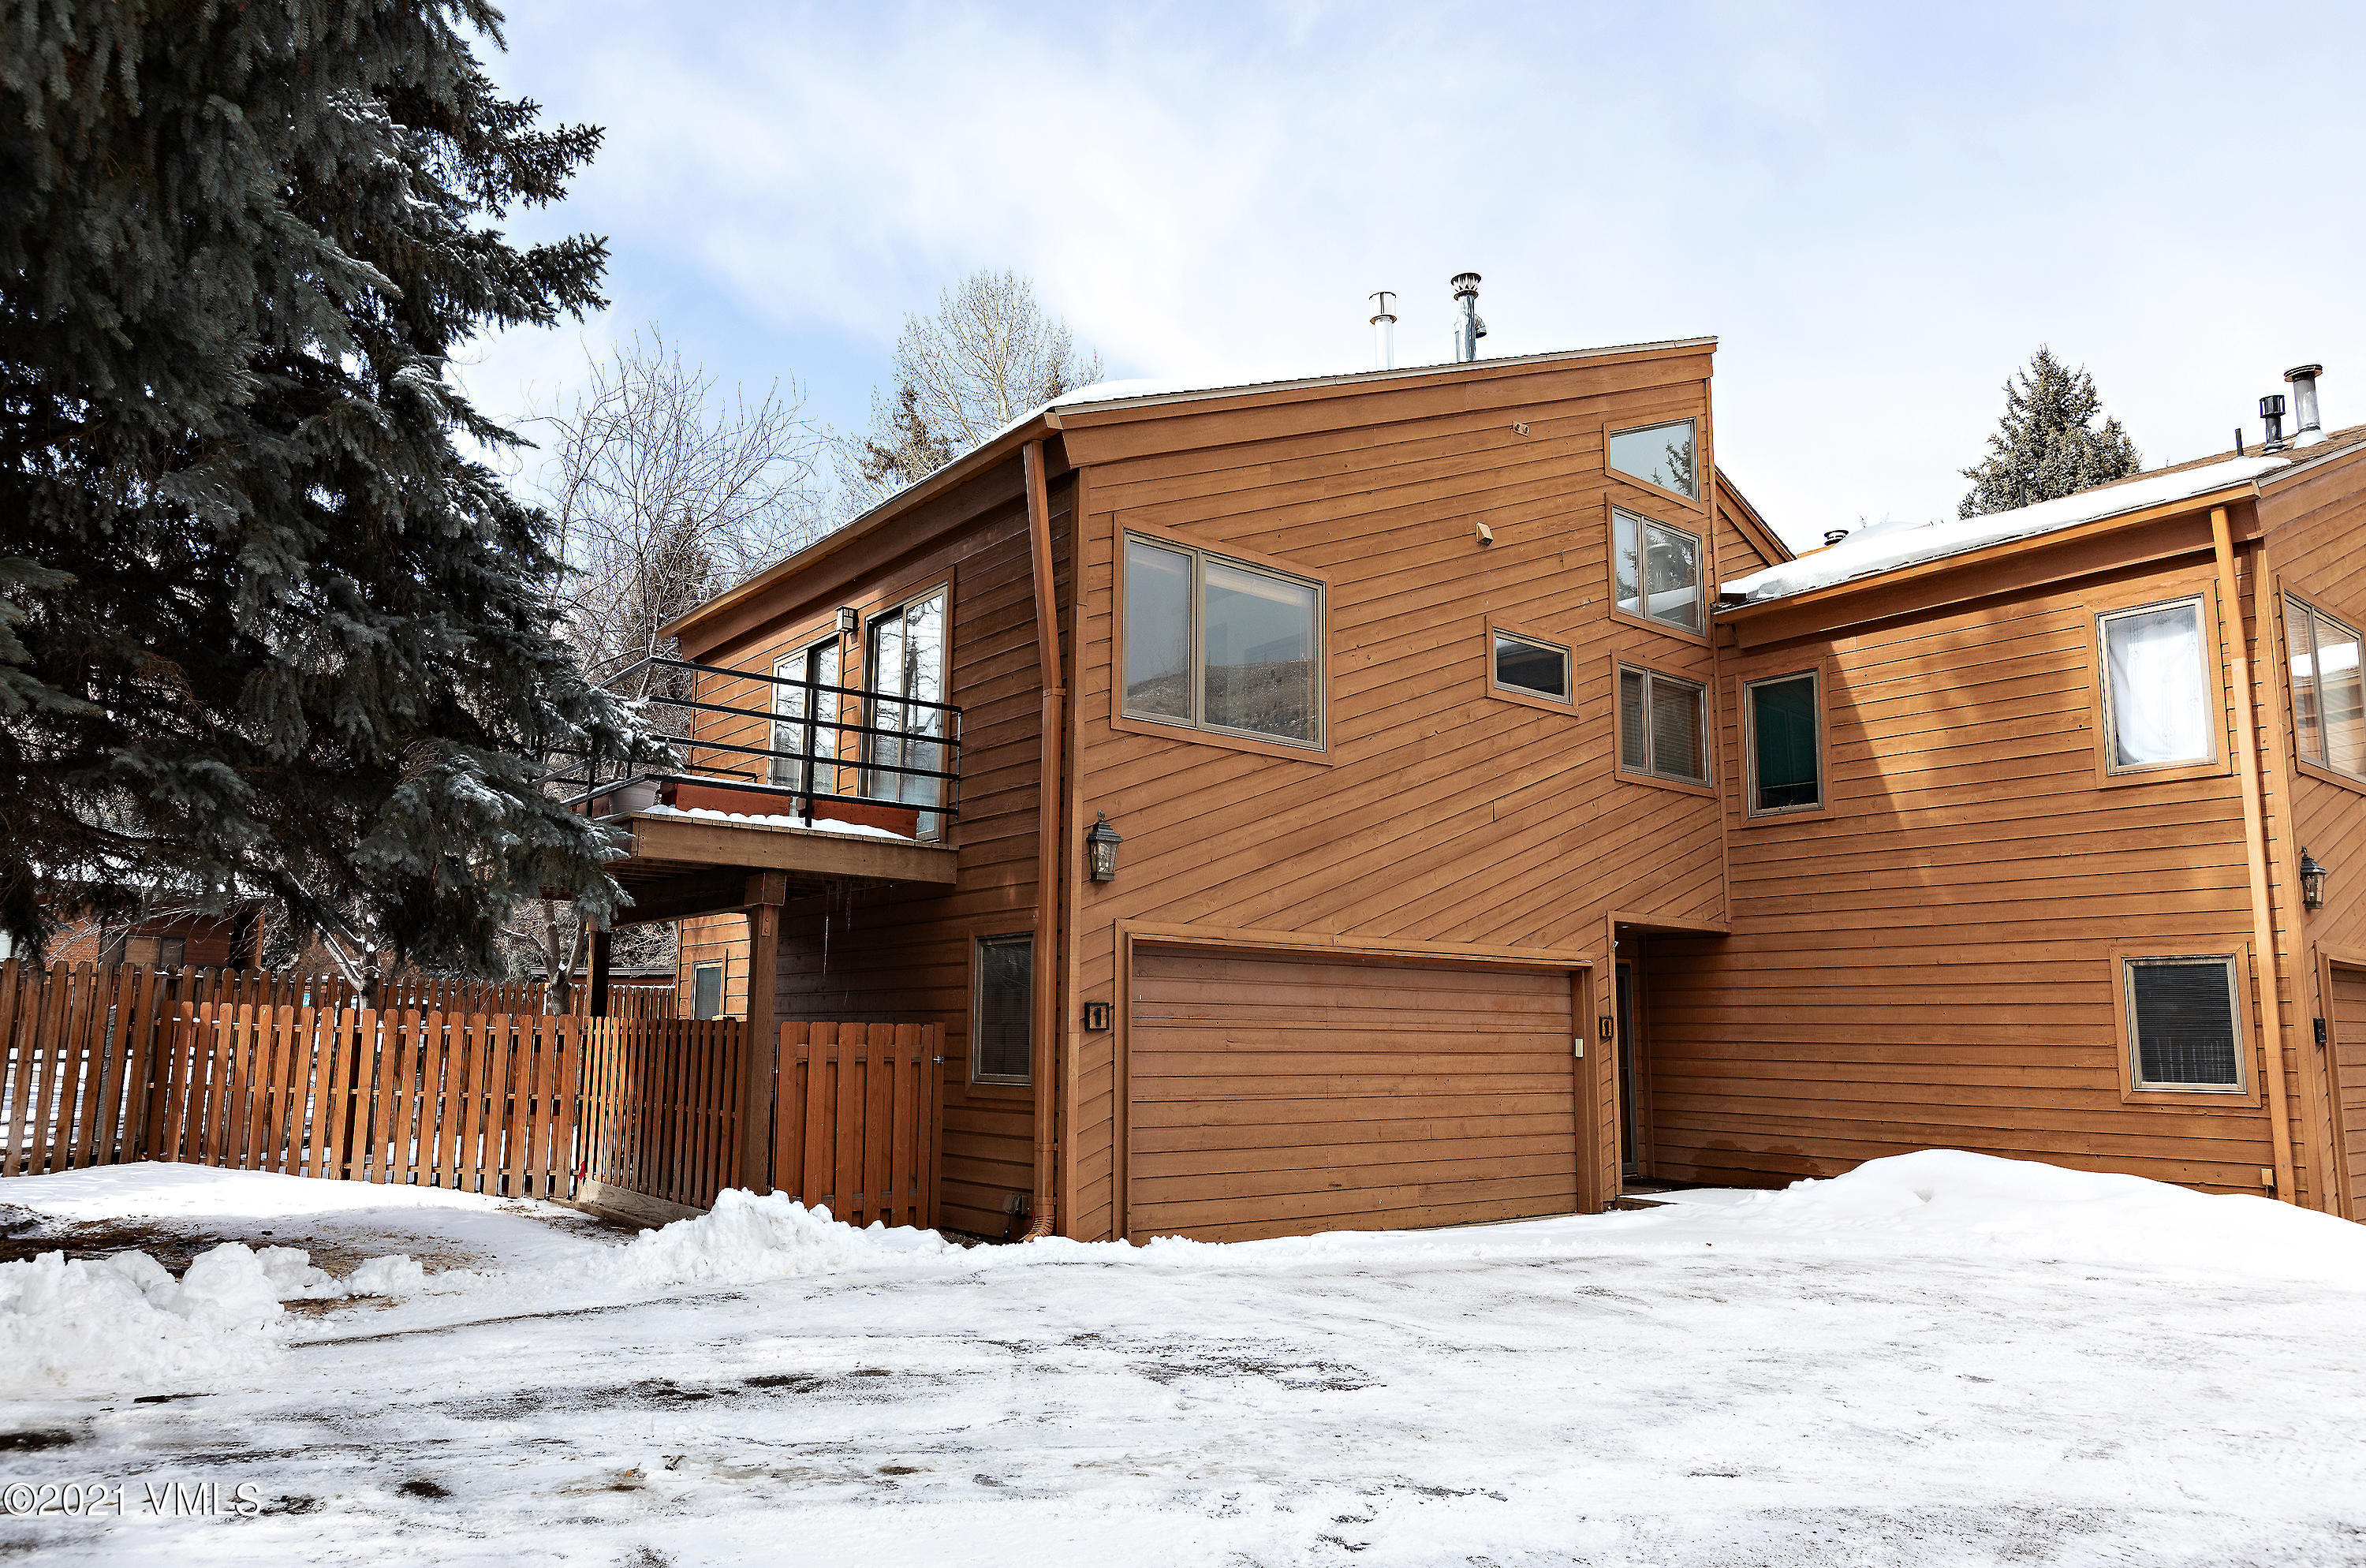 Spacious end unit offering 4 bedrooms and 5 baths that lives more like a duplex than a triplex.  A plethora of natural sunlight, large bedrooms, oversized loft that could be converted to 5th bedroom and 2 car garage make this a desirable home.  Enjoy the outdoors and views while sitting on 1 of the 4 exterior decks. Walk to all of the amenities that EagleVail has to offer; a salt water pool, parks, tennis courts, pavilion, a Par 3 and 18-hole golf course.